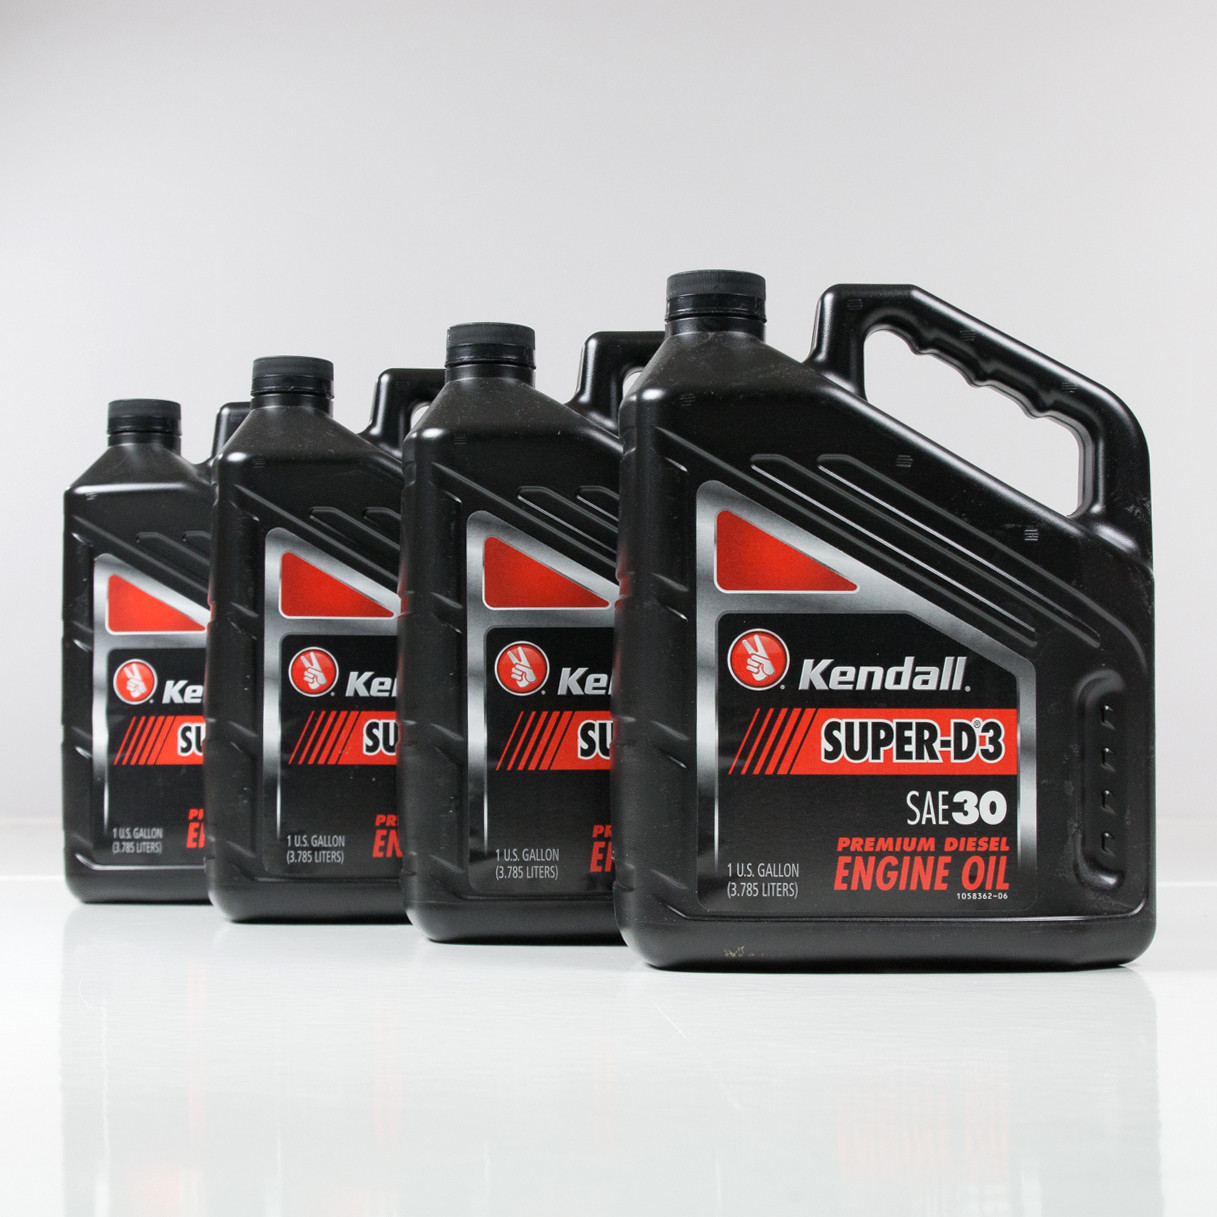 Kendall Super D 3 30w Engine Oil 41 Gallon Case